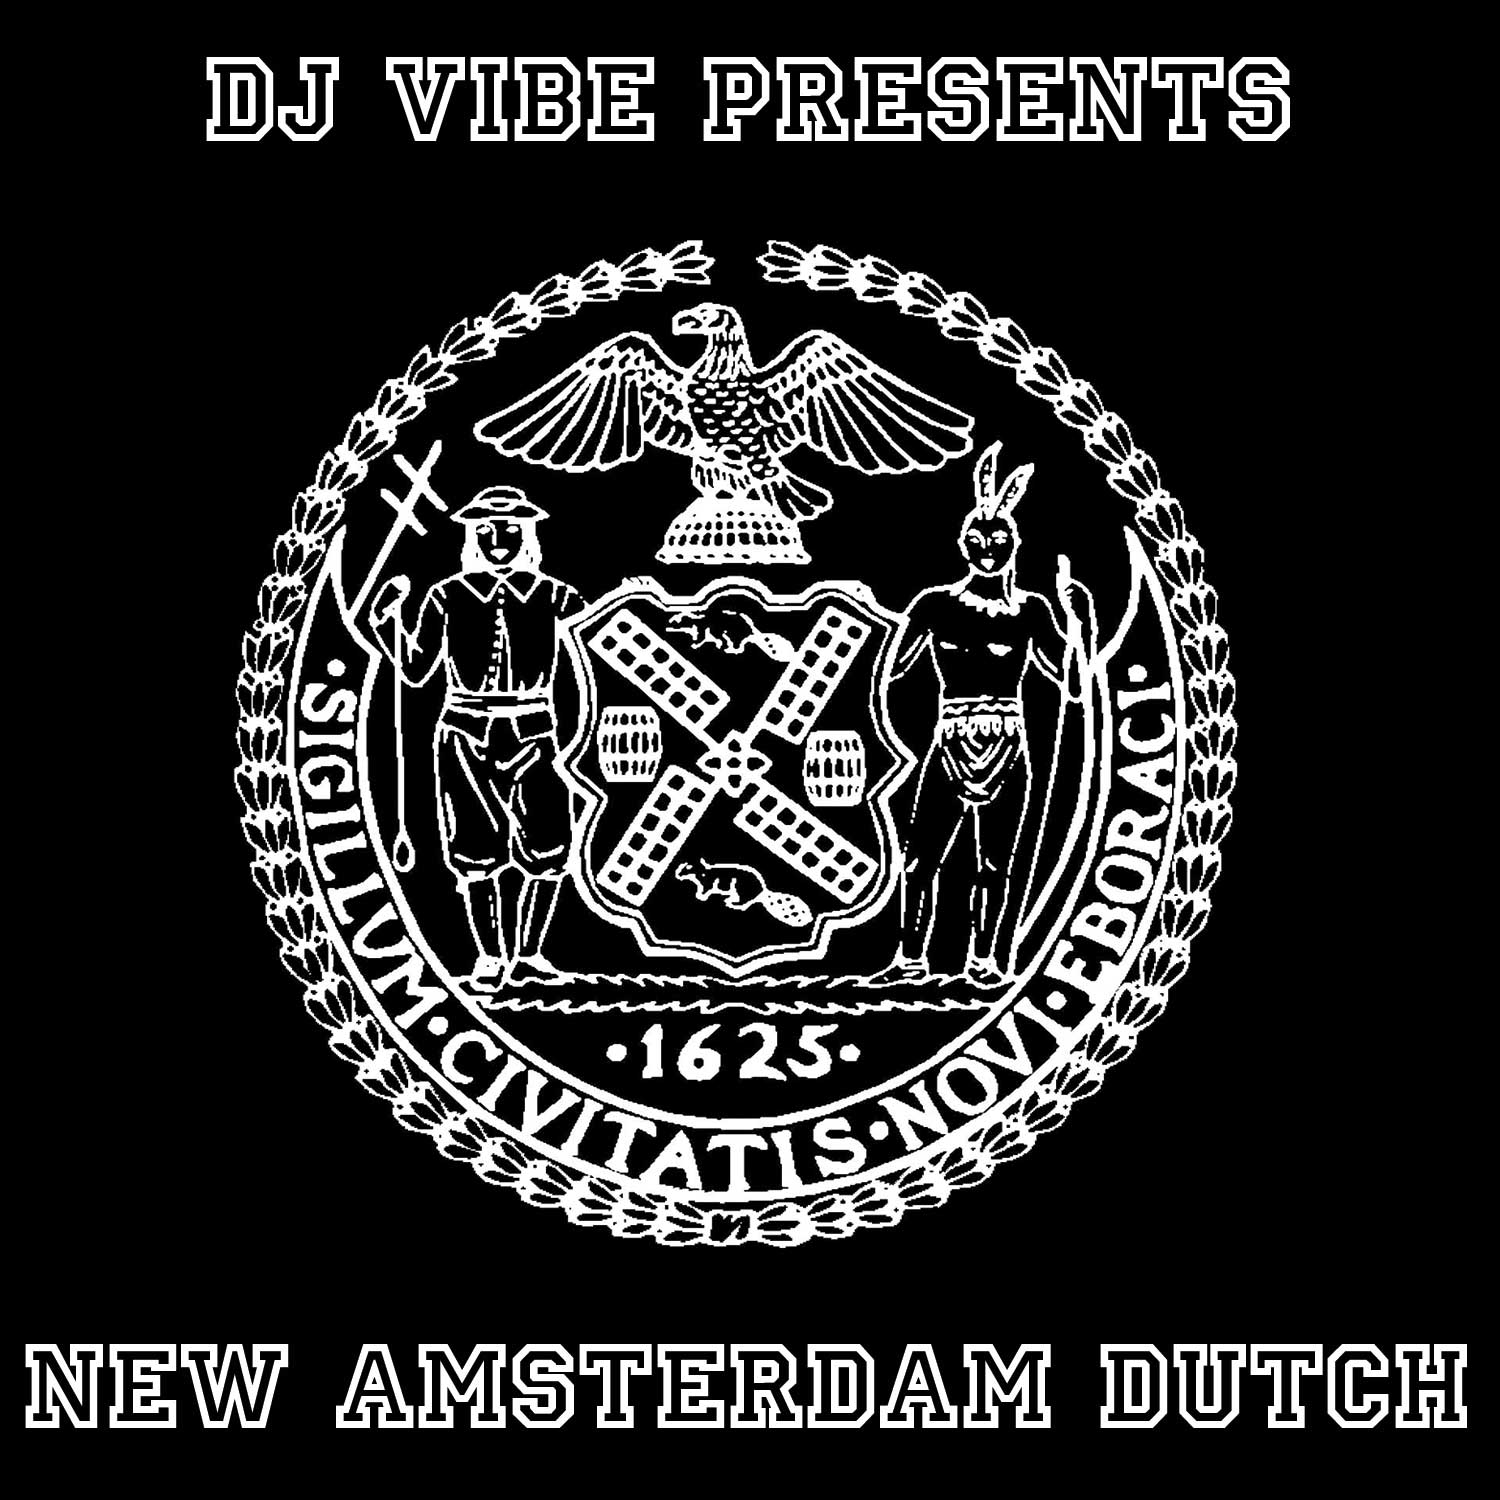 New Amsterdam Dutch